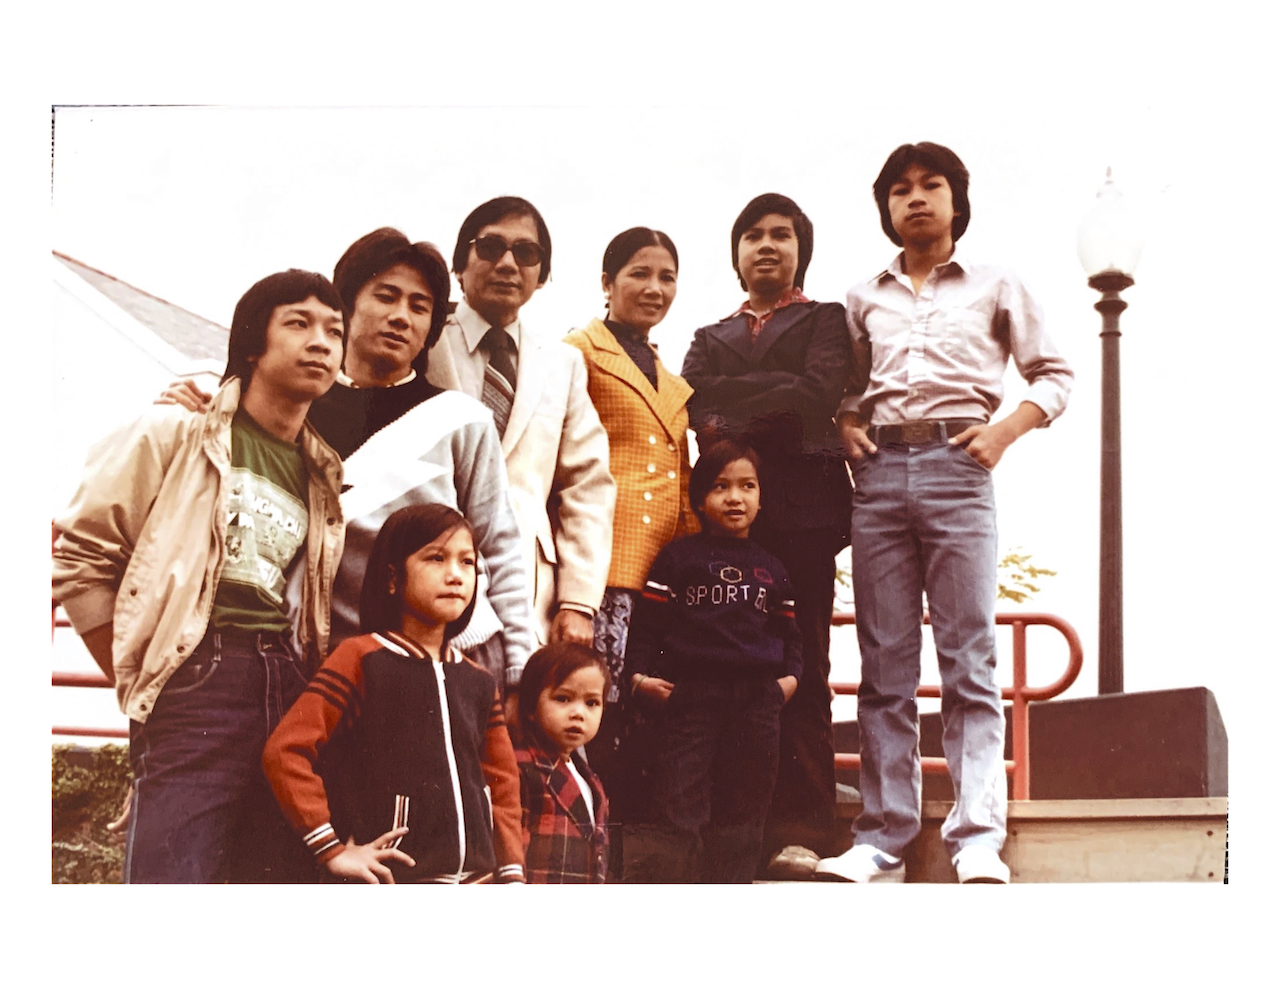 This is my entire family — my parents, my siblings, and me (the smallest) — when we were finally reunited in New Orleans in 1981.